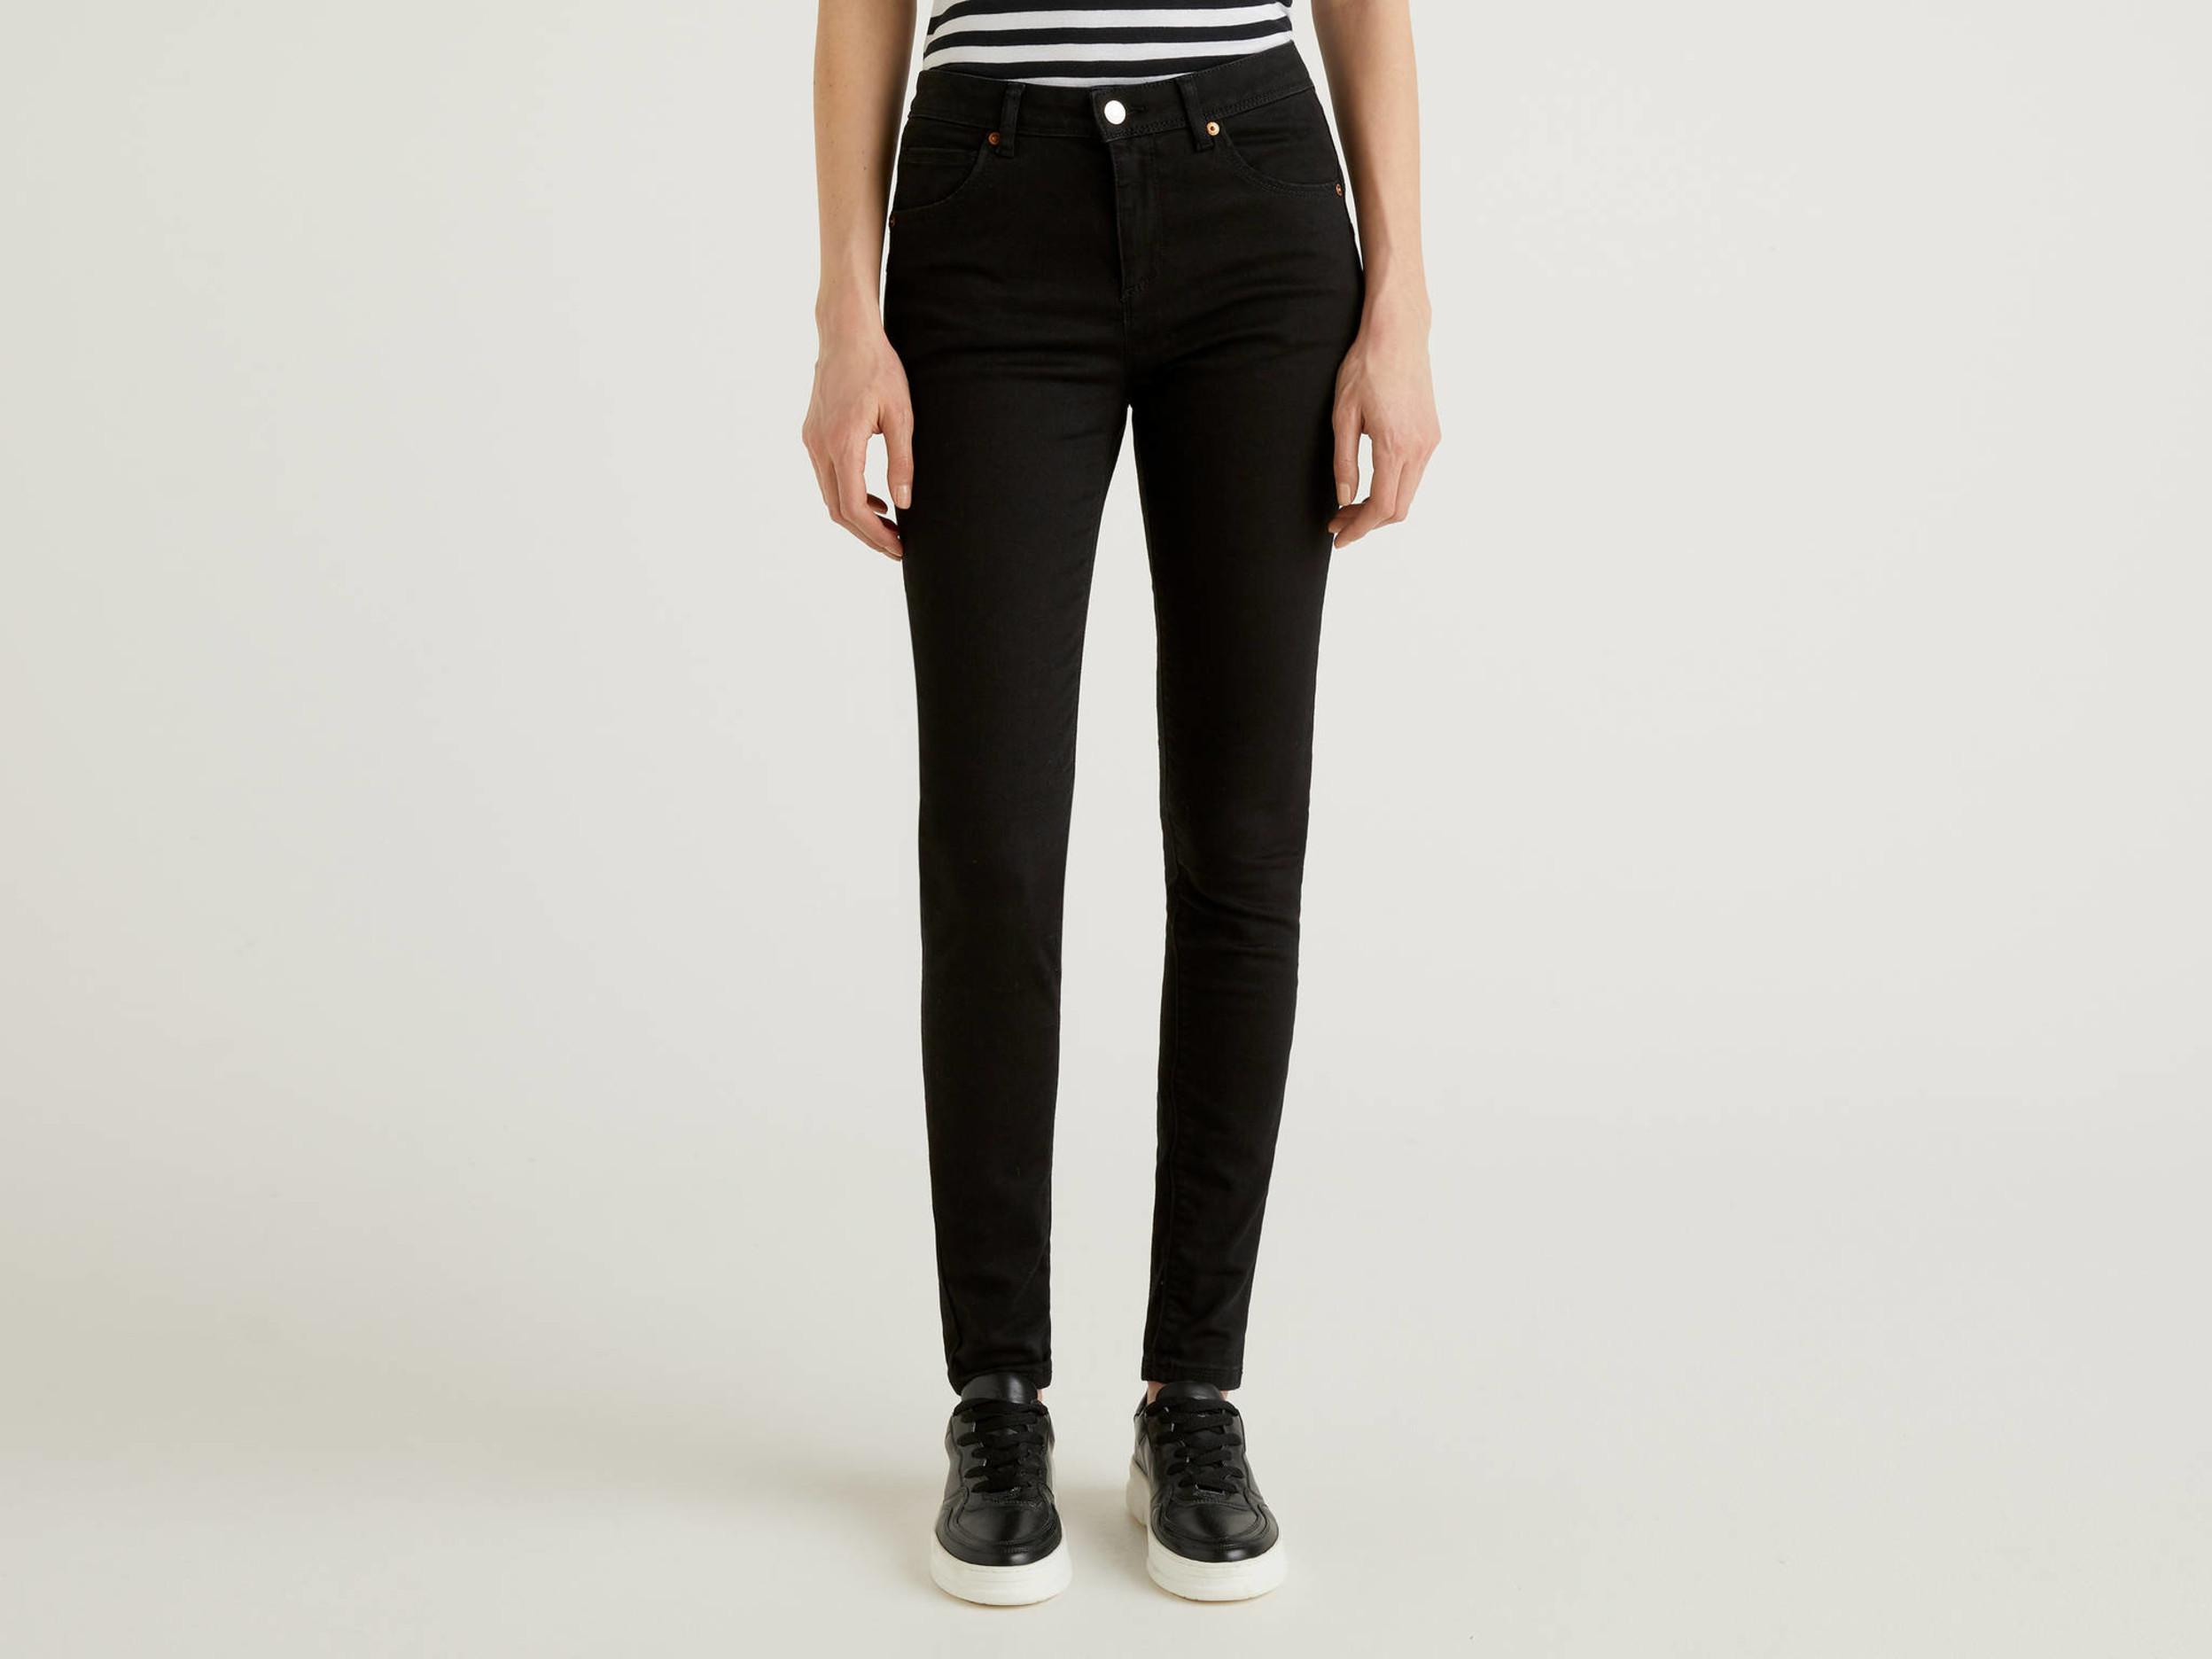 Benetton, Jeans Push Up Skinny Fit, Nero, Donna